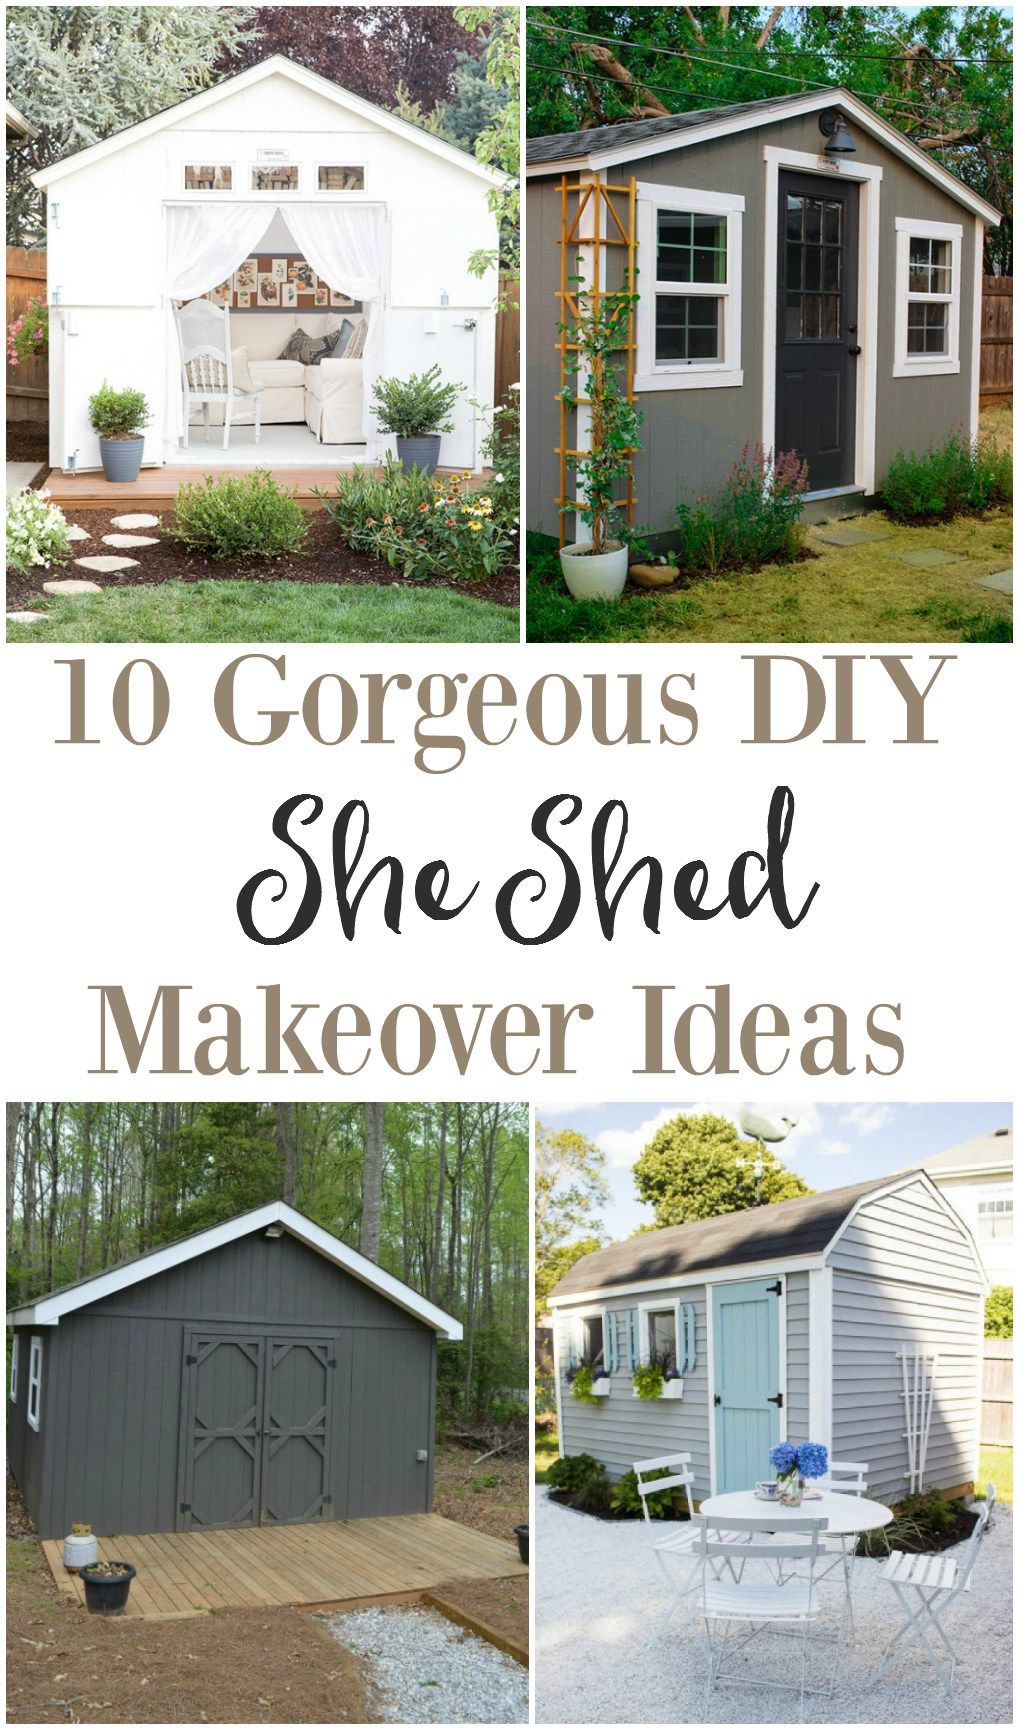 She Shed Makeover Ideas Favorite Places Amp Spaces Shed